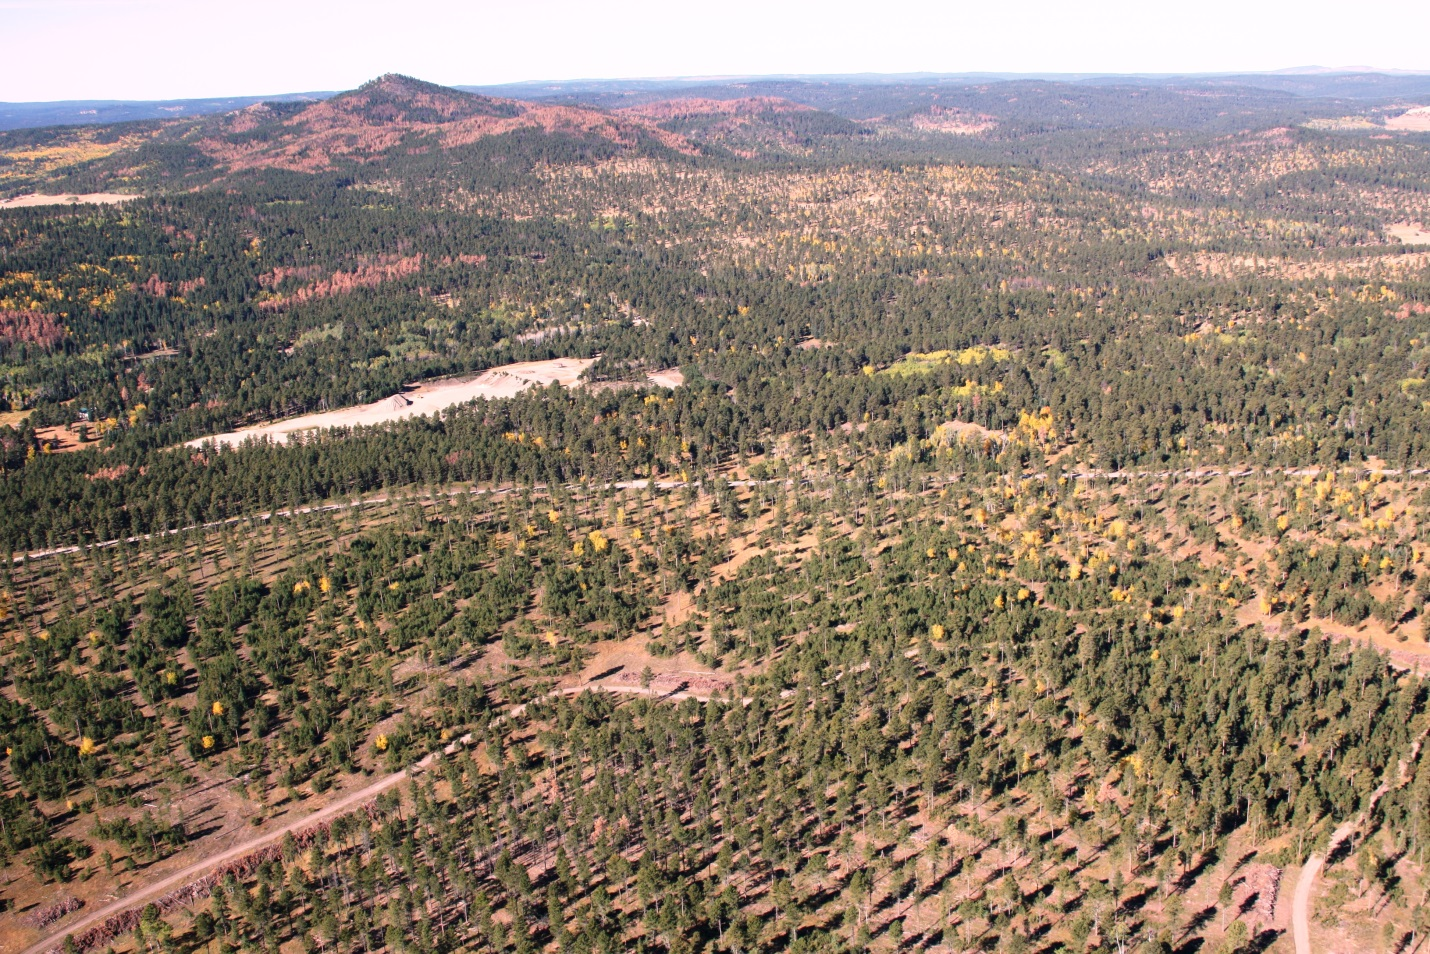 aerial view of beetle killed trees removed leaving only sparse green forest